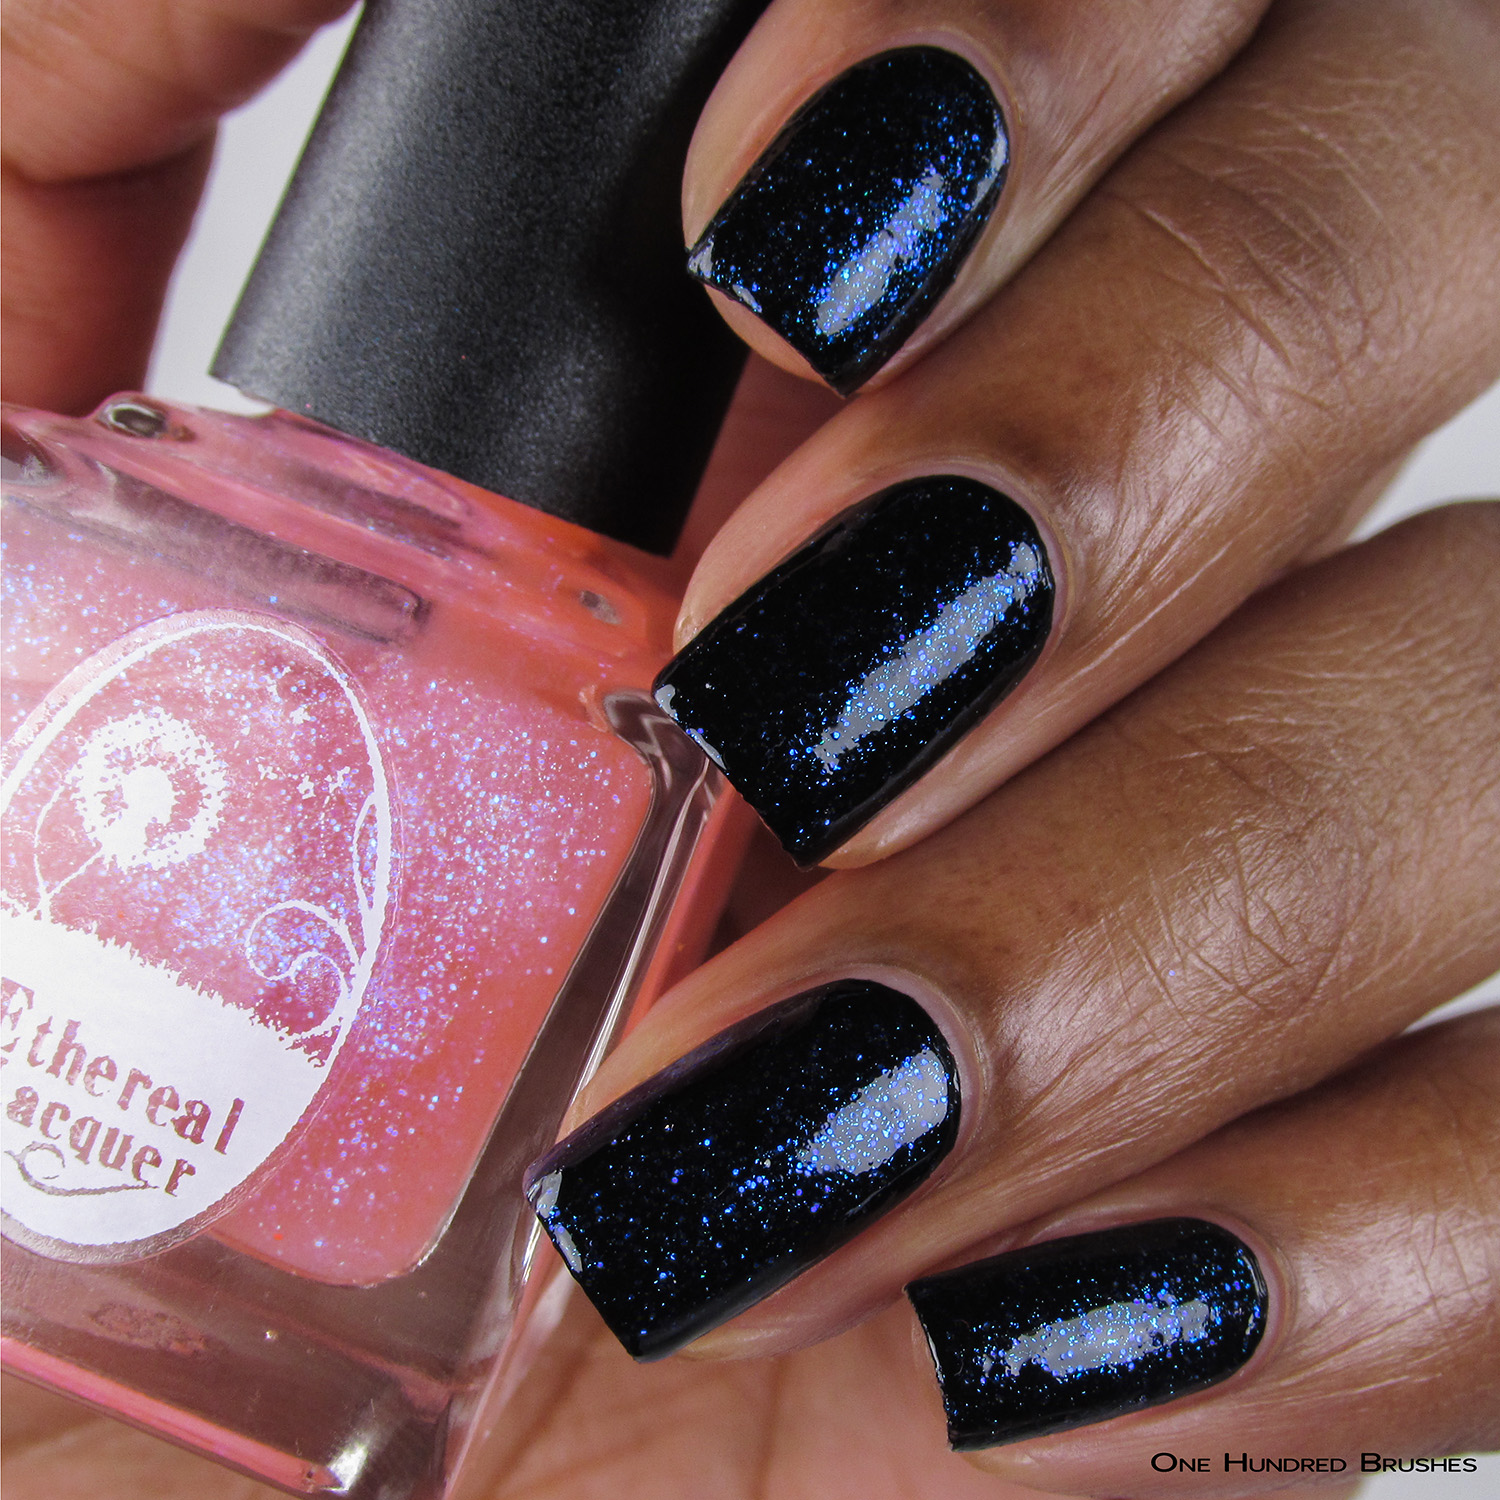 Eat Me, Drink Me - Bottle Front over Black - Ethereal Lacquer - July HHC